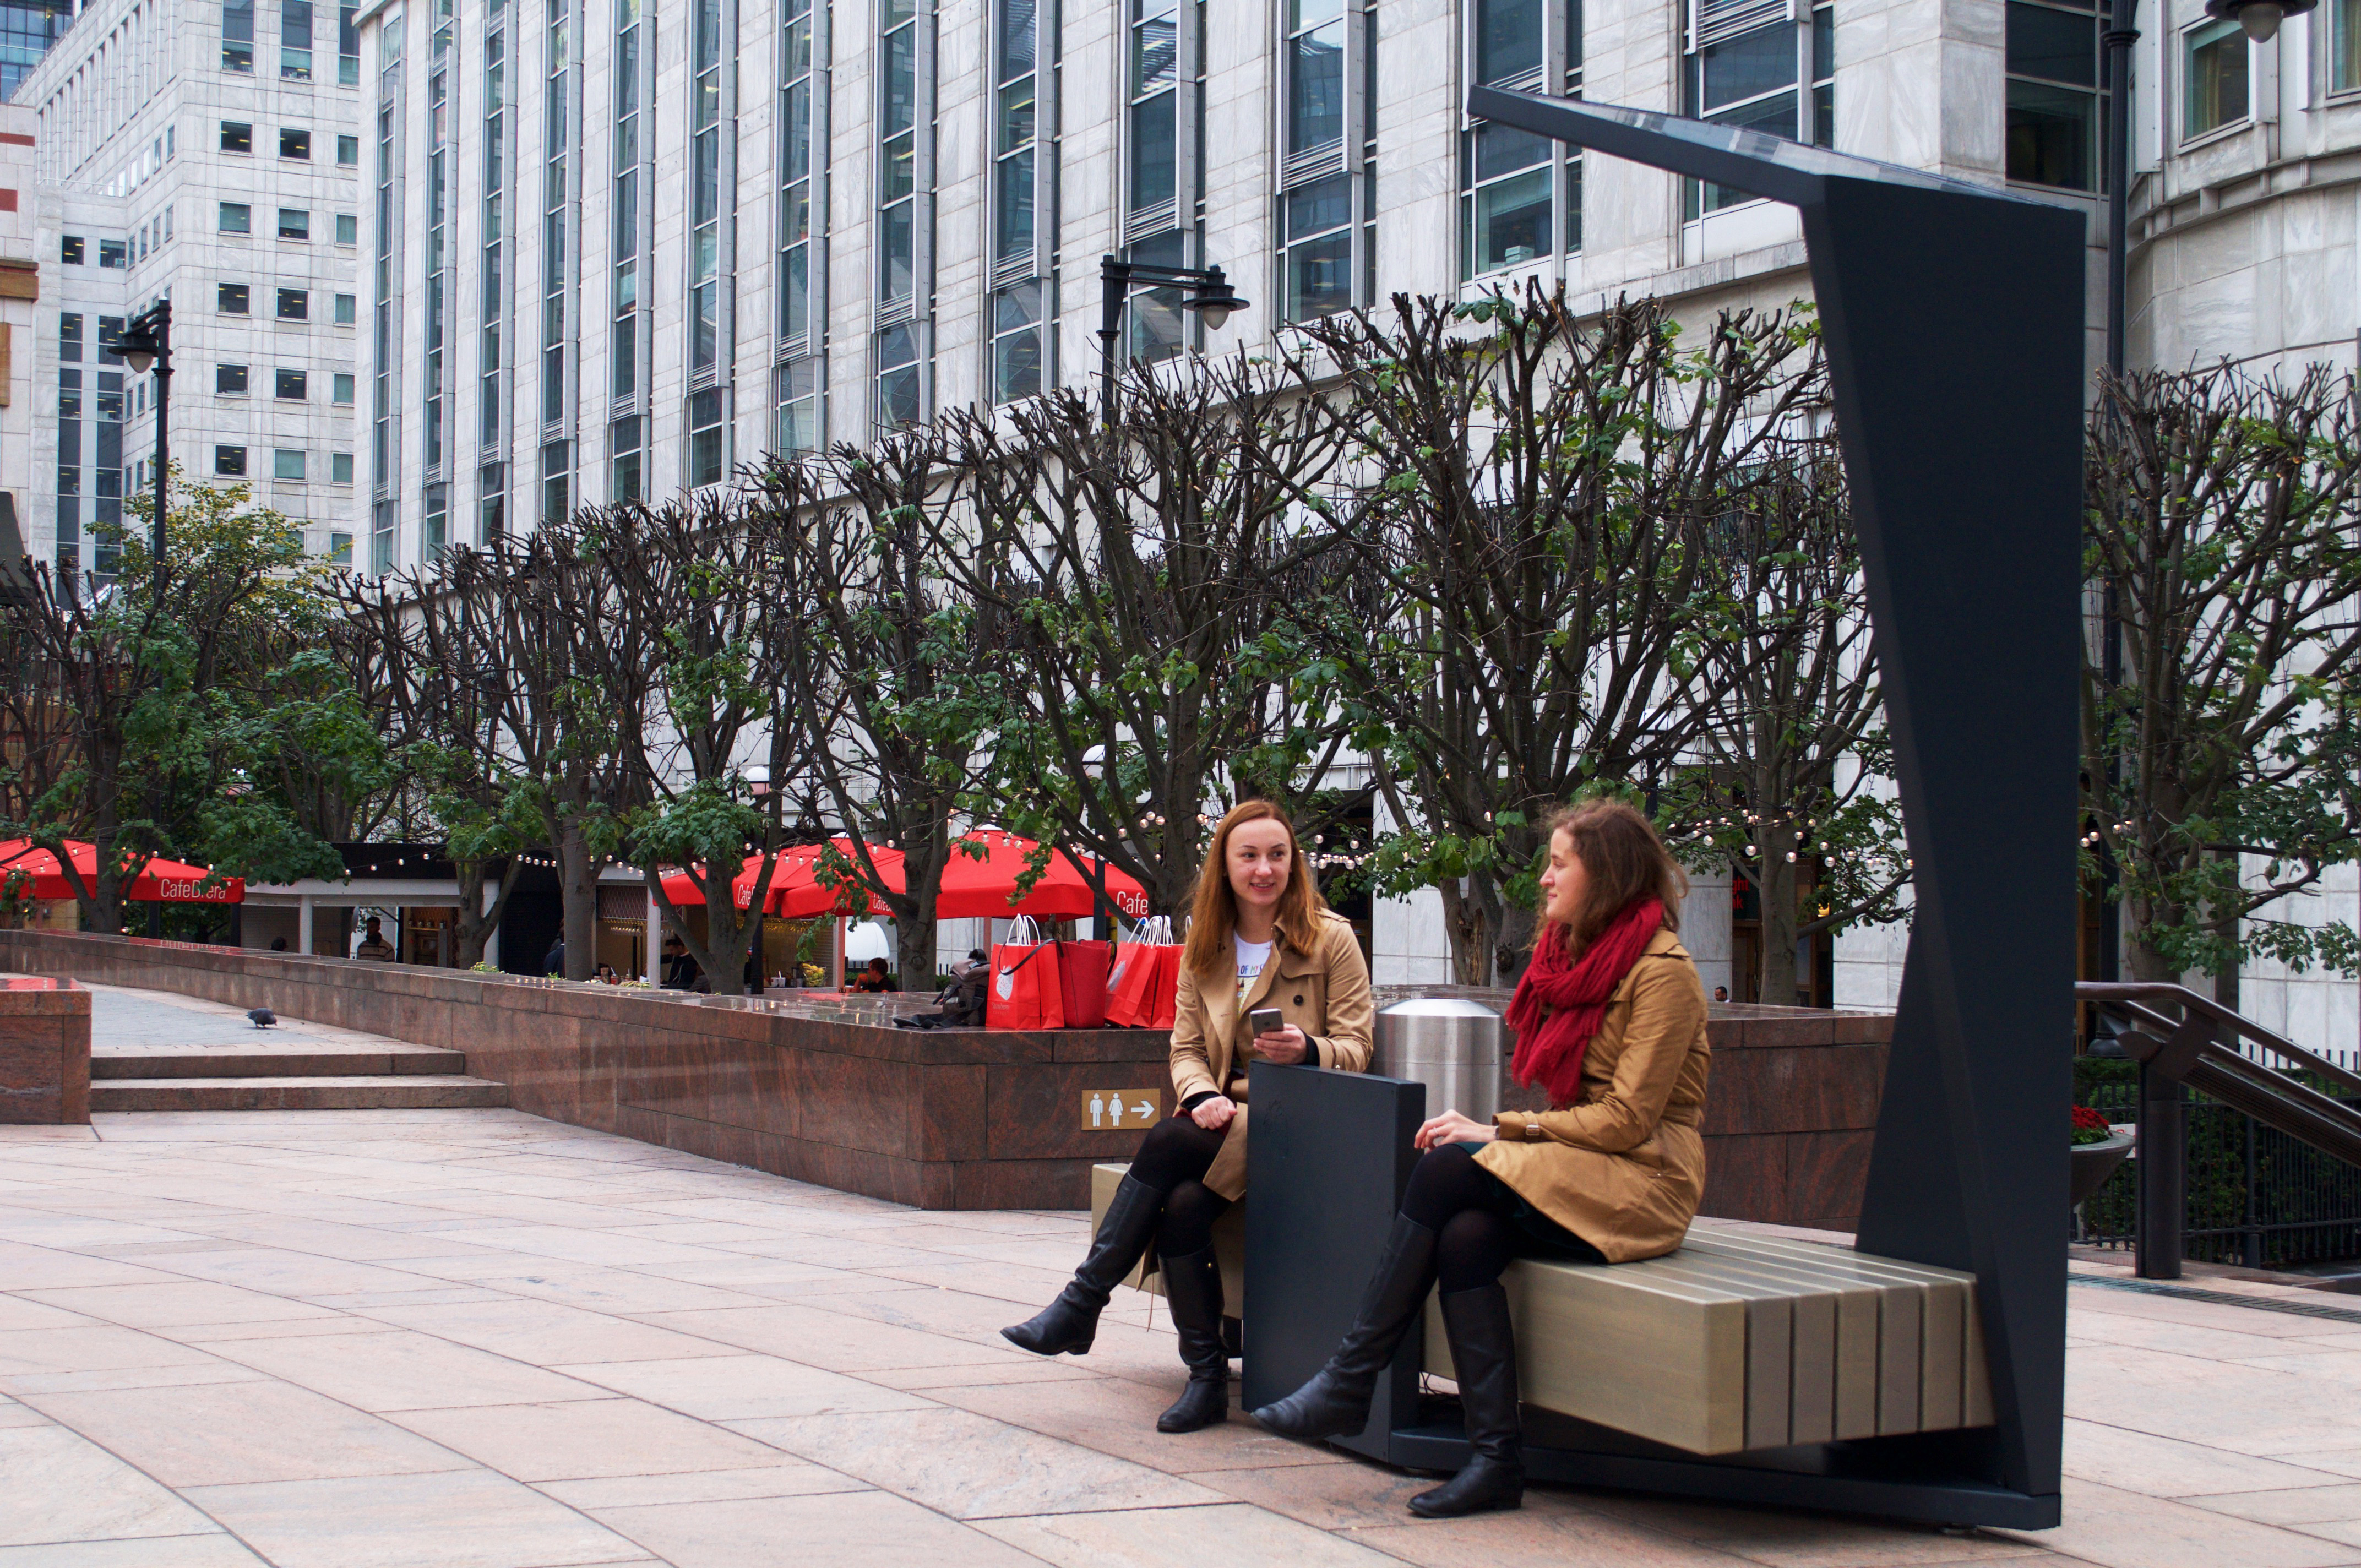 Strawberry Smart Bench in Canary Wharf. Photo credit - Marc Ehrenbold